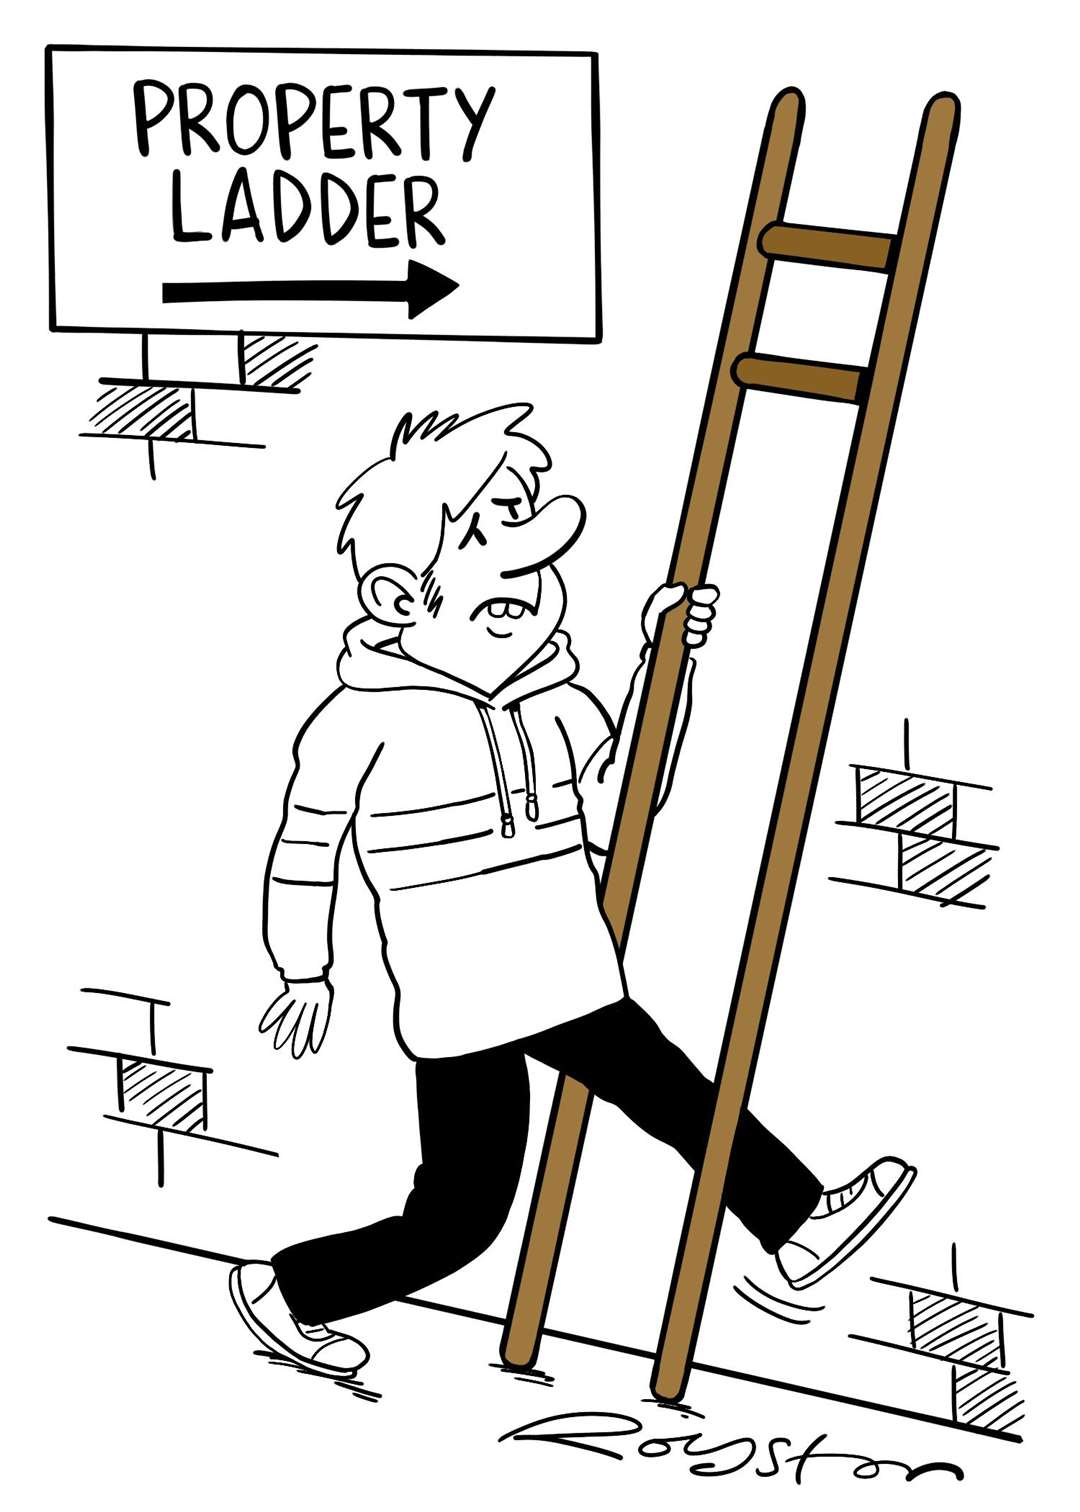 The almost impossible task of getting on the property ladder. By Royston Robertson